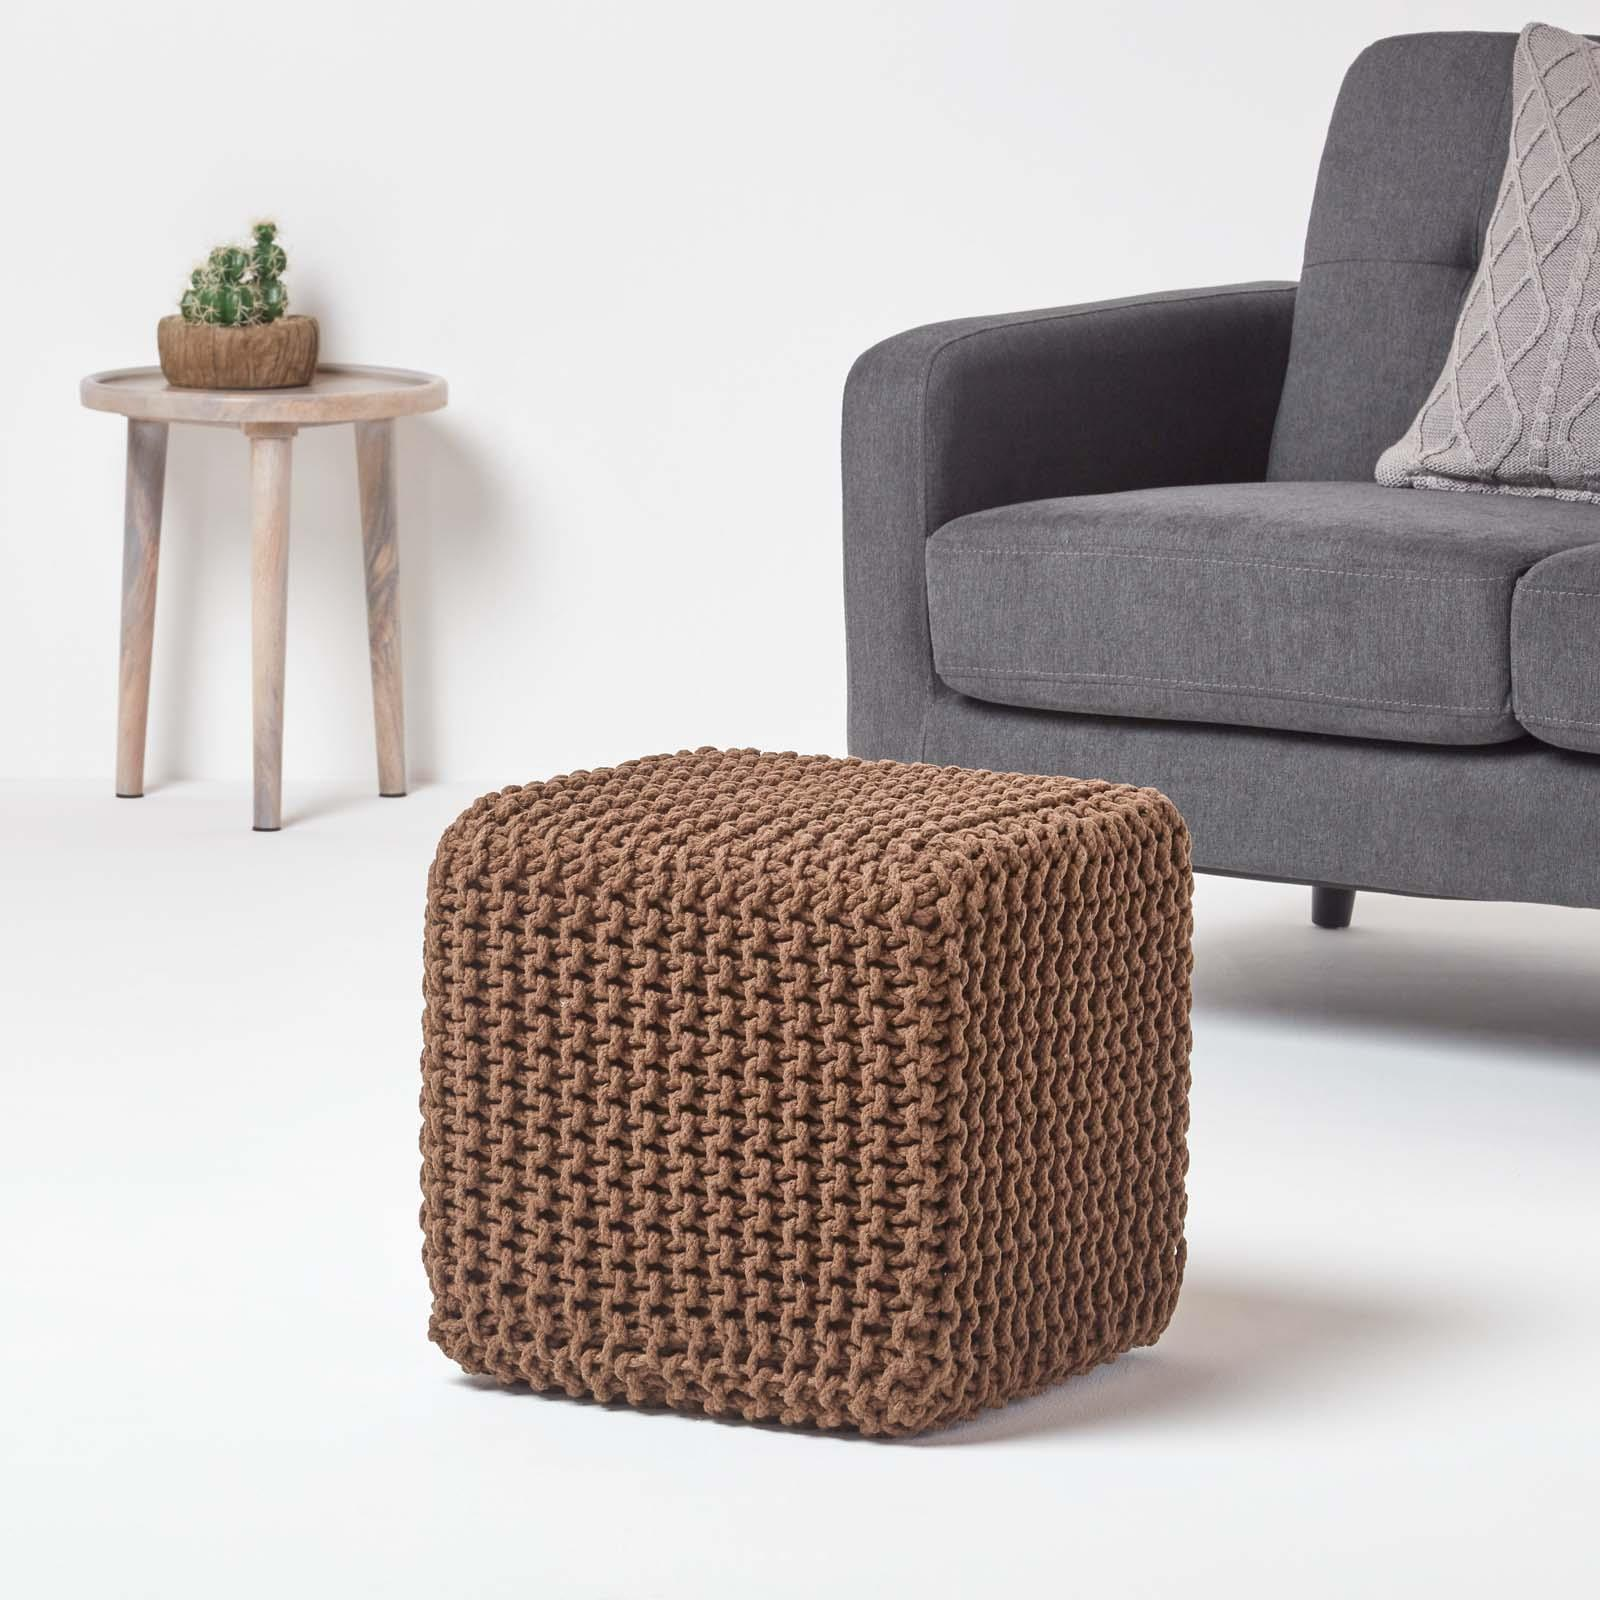 Hand-Knitted-100-Cotton-Pouffes-Round-Sphere-Or-Cube-Square-Chunky-Footstools thumbnail 29